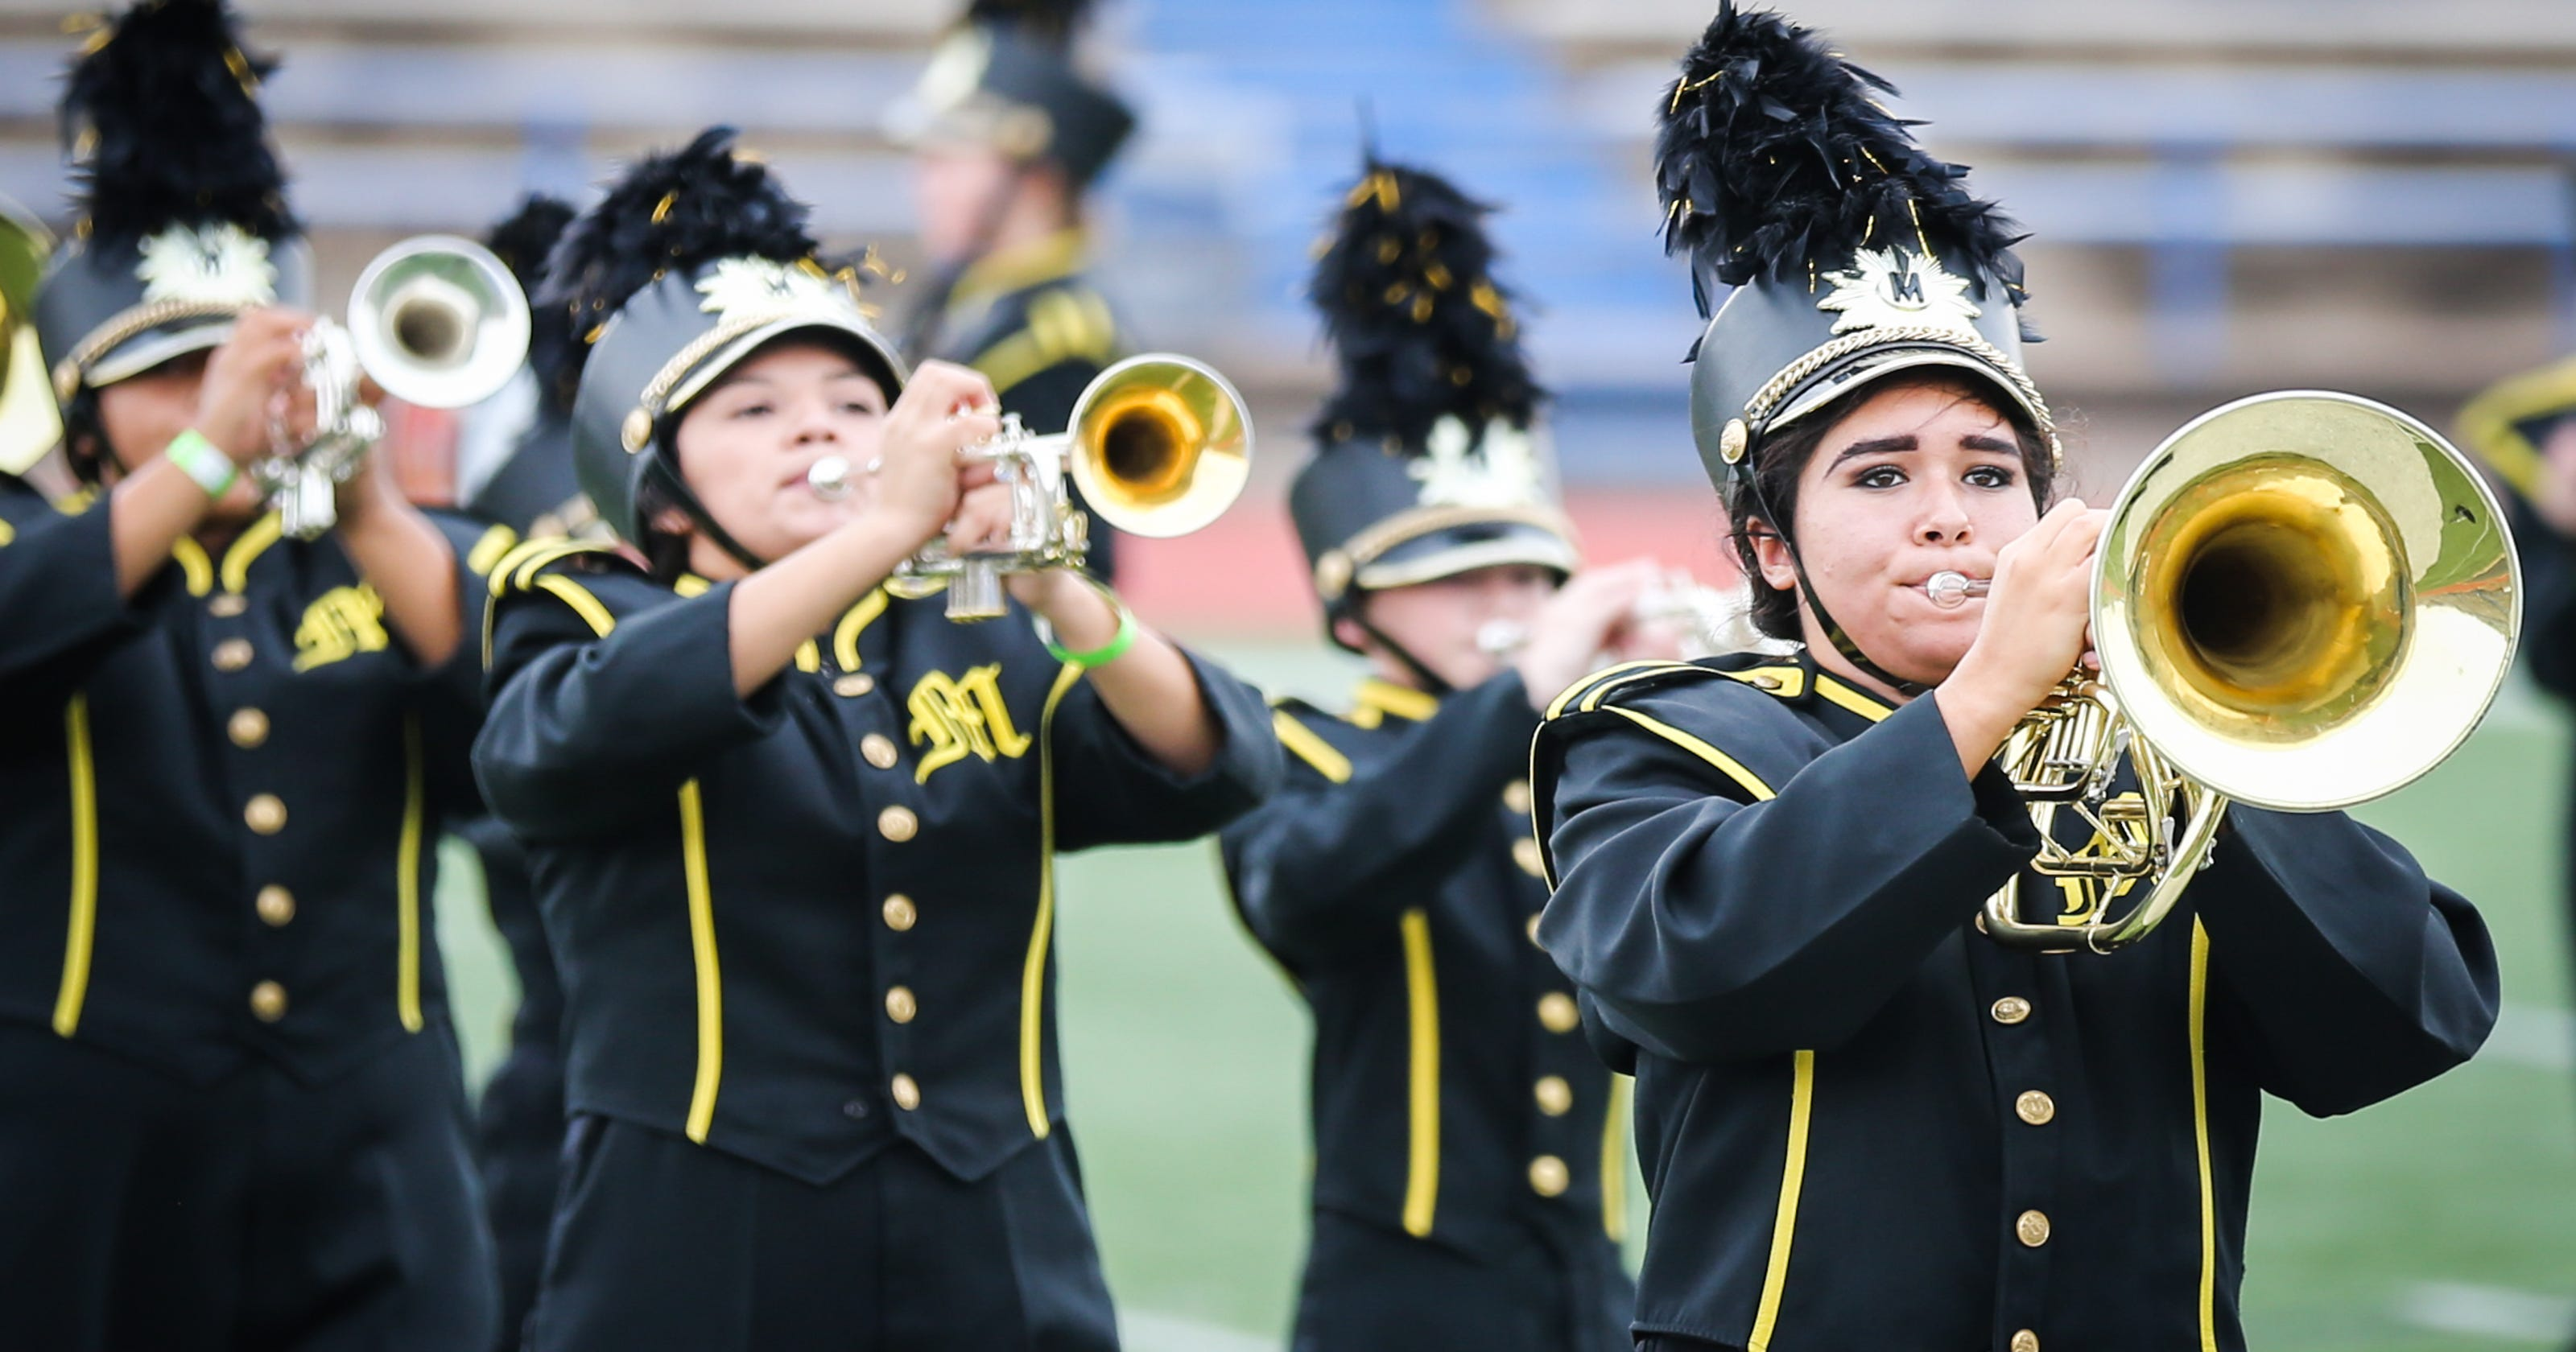 Concho classic marching festival